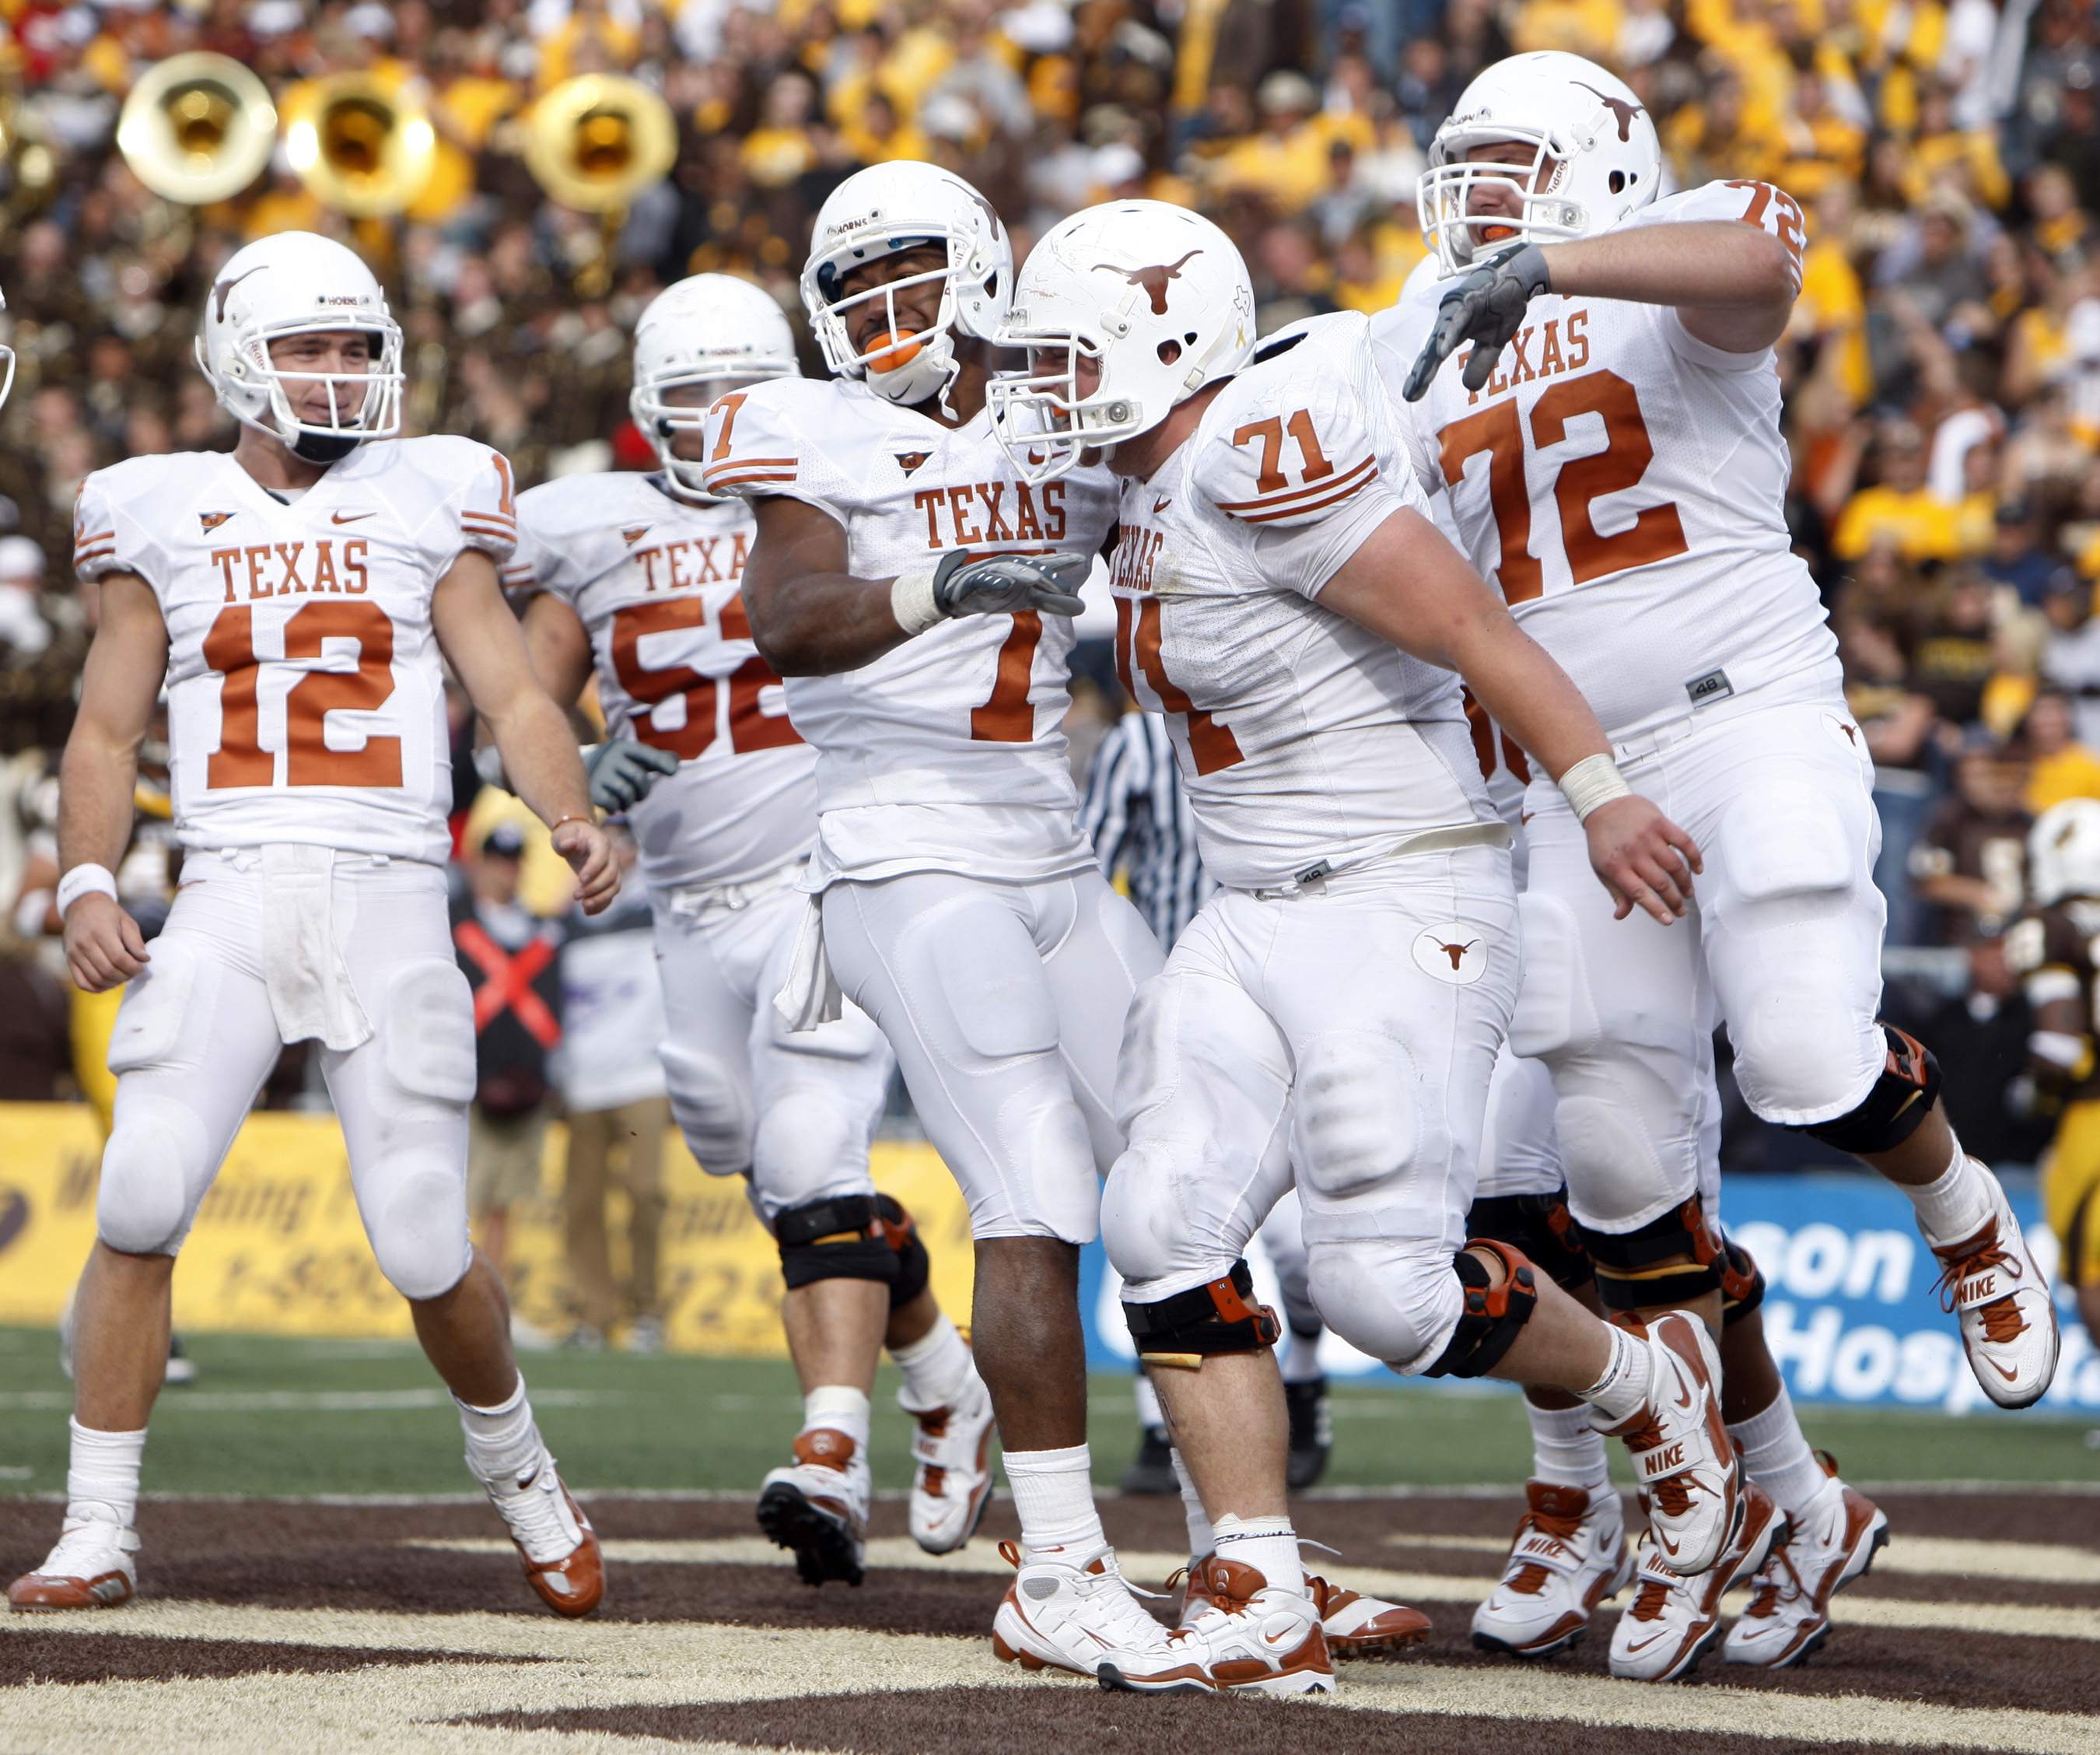 Texas wide receiver John Chiles, third from left, is congratulated after taking a pass in for a touchdown by quarterback Colt McCoy, left, Chris Hall, second from right, and offensive tackle Britt Mitchell during the fourth quarter of Texas' 41-10 victory over Wyoming in an NCAA college football game in Laramie, Wyo., on Saturday, Sept. 12, 2009. (AP Photo/David Zalubowski)